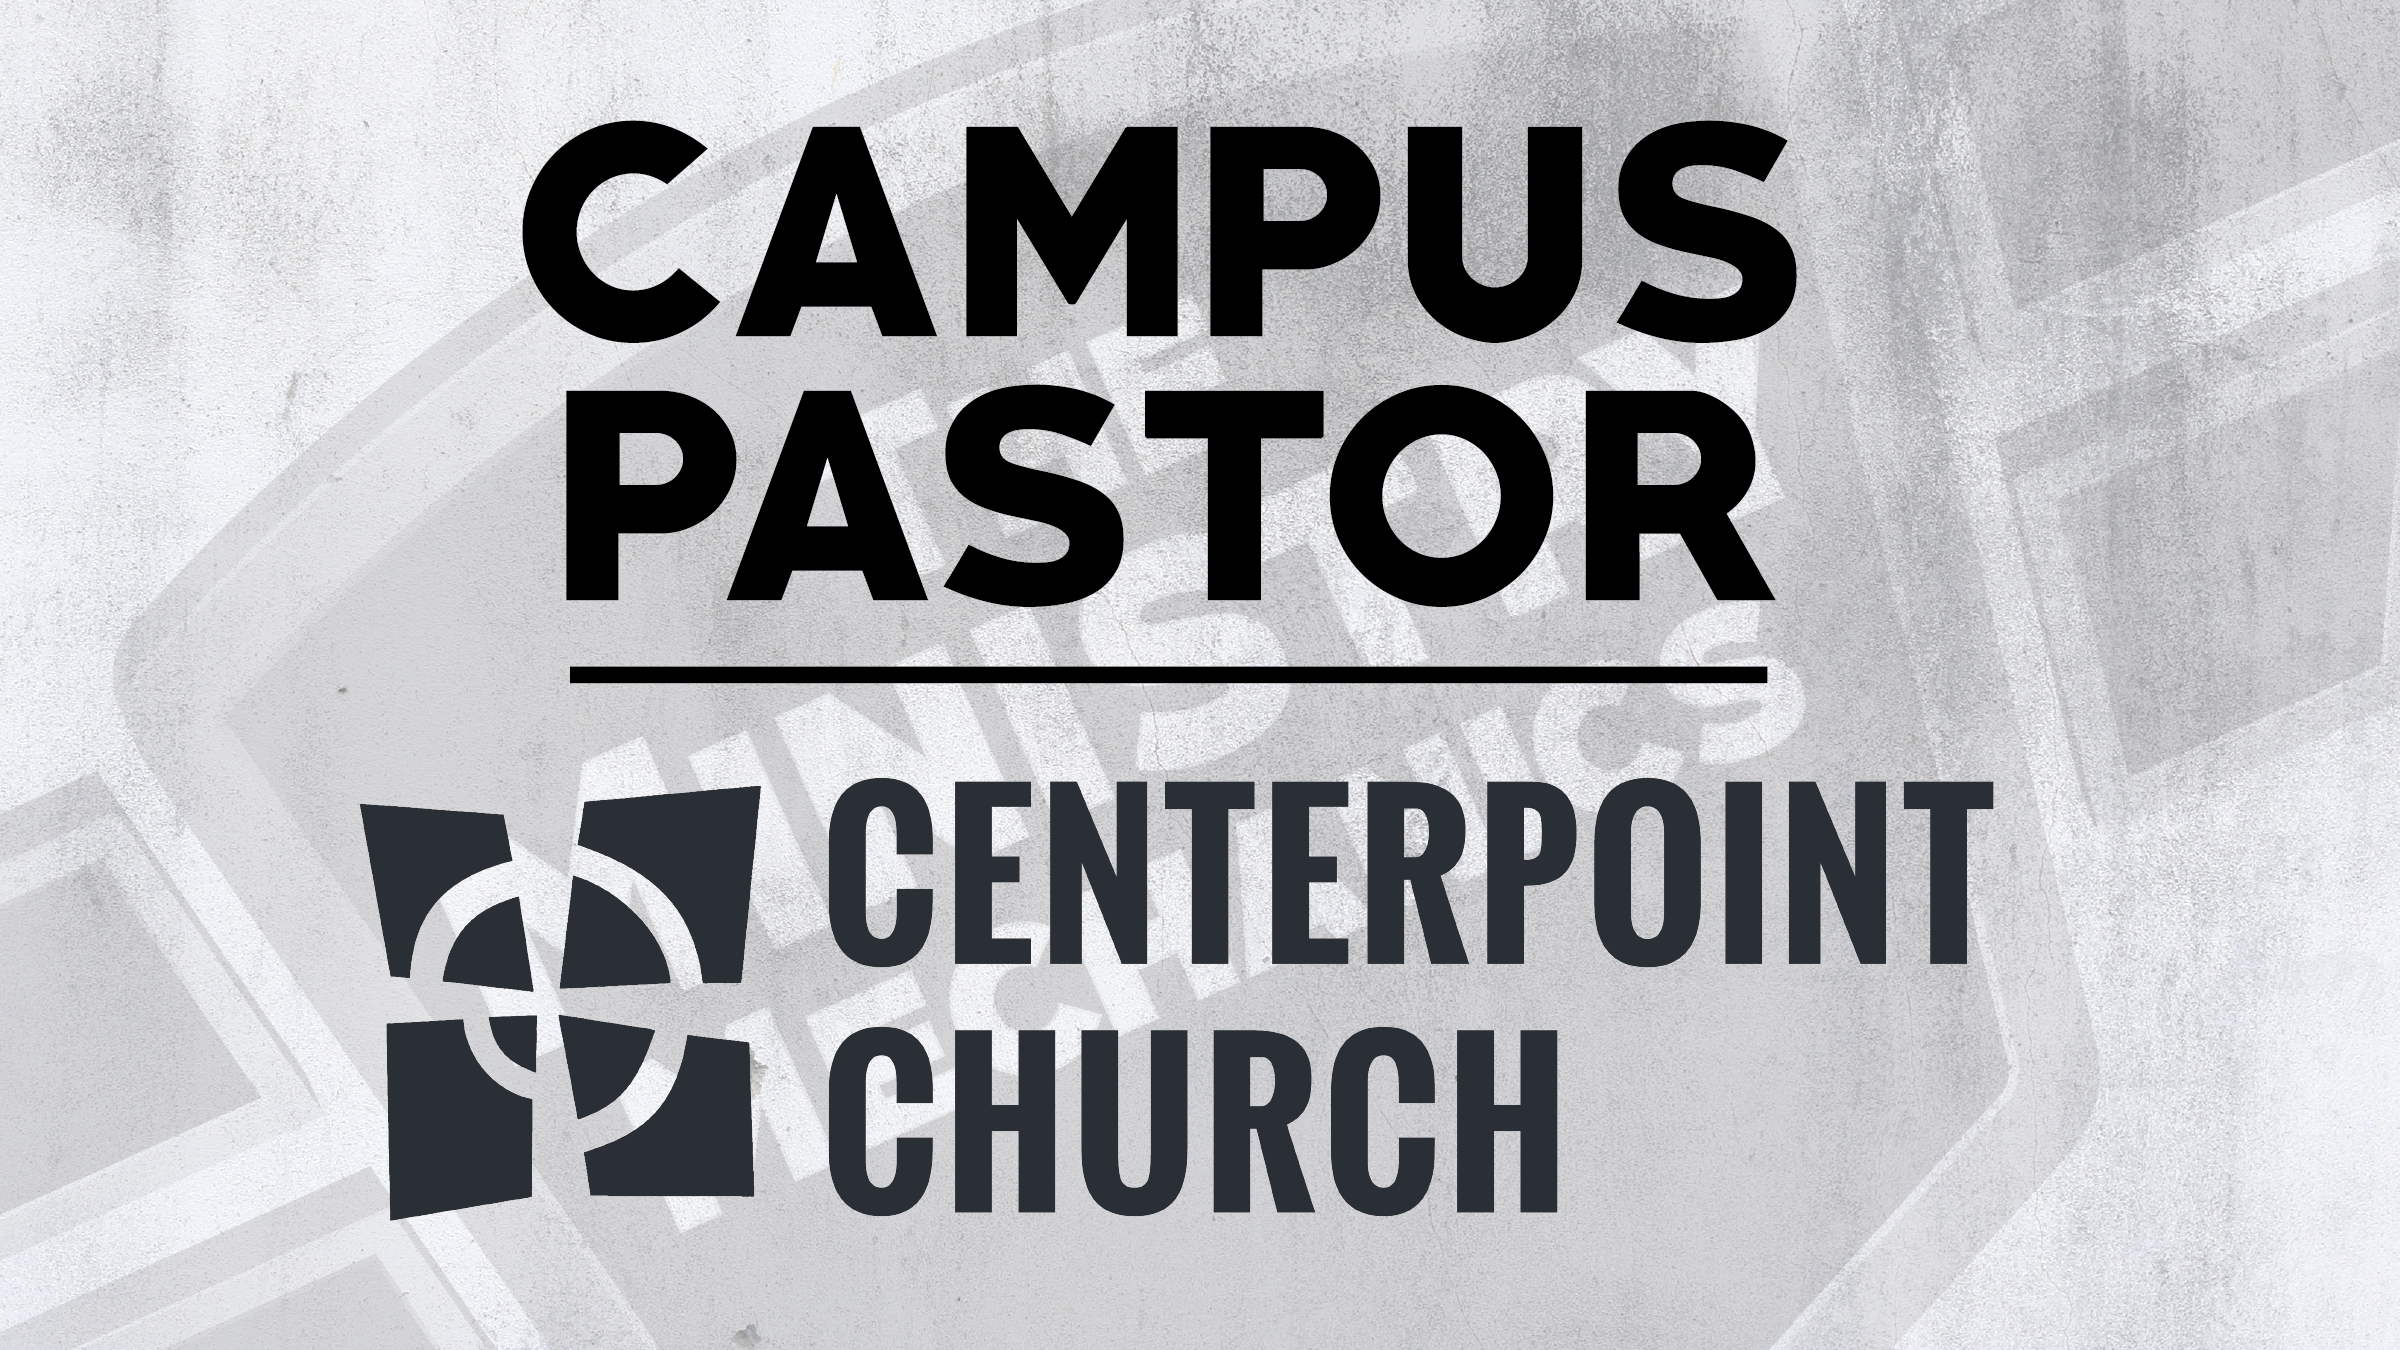 Centerpoint Campus Pastor 16x9.png